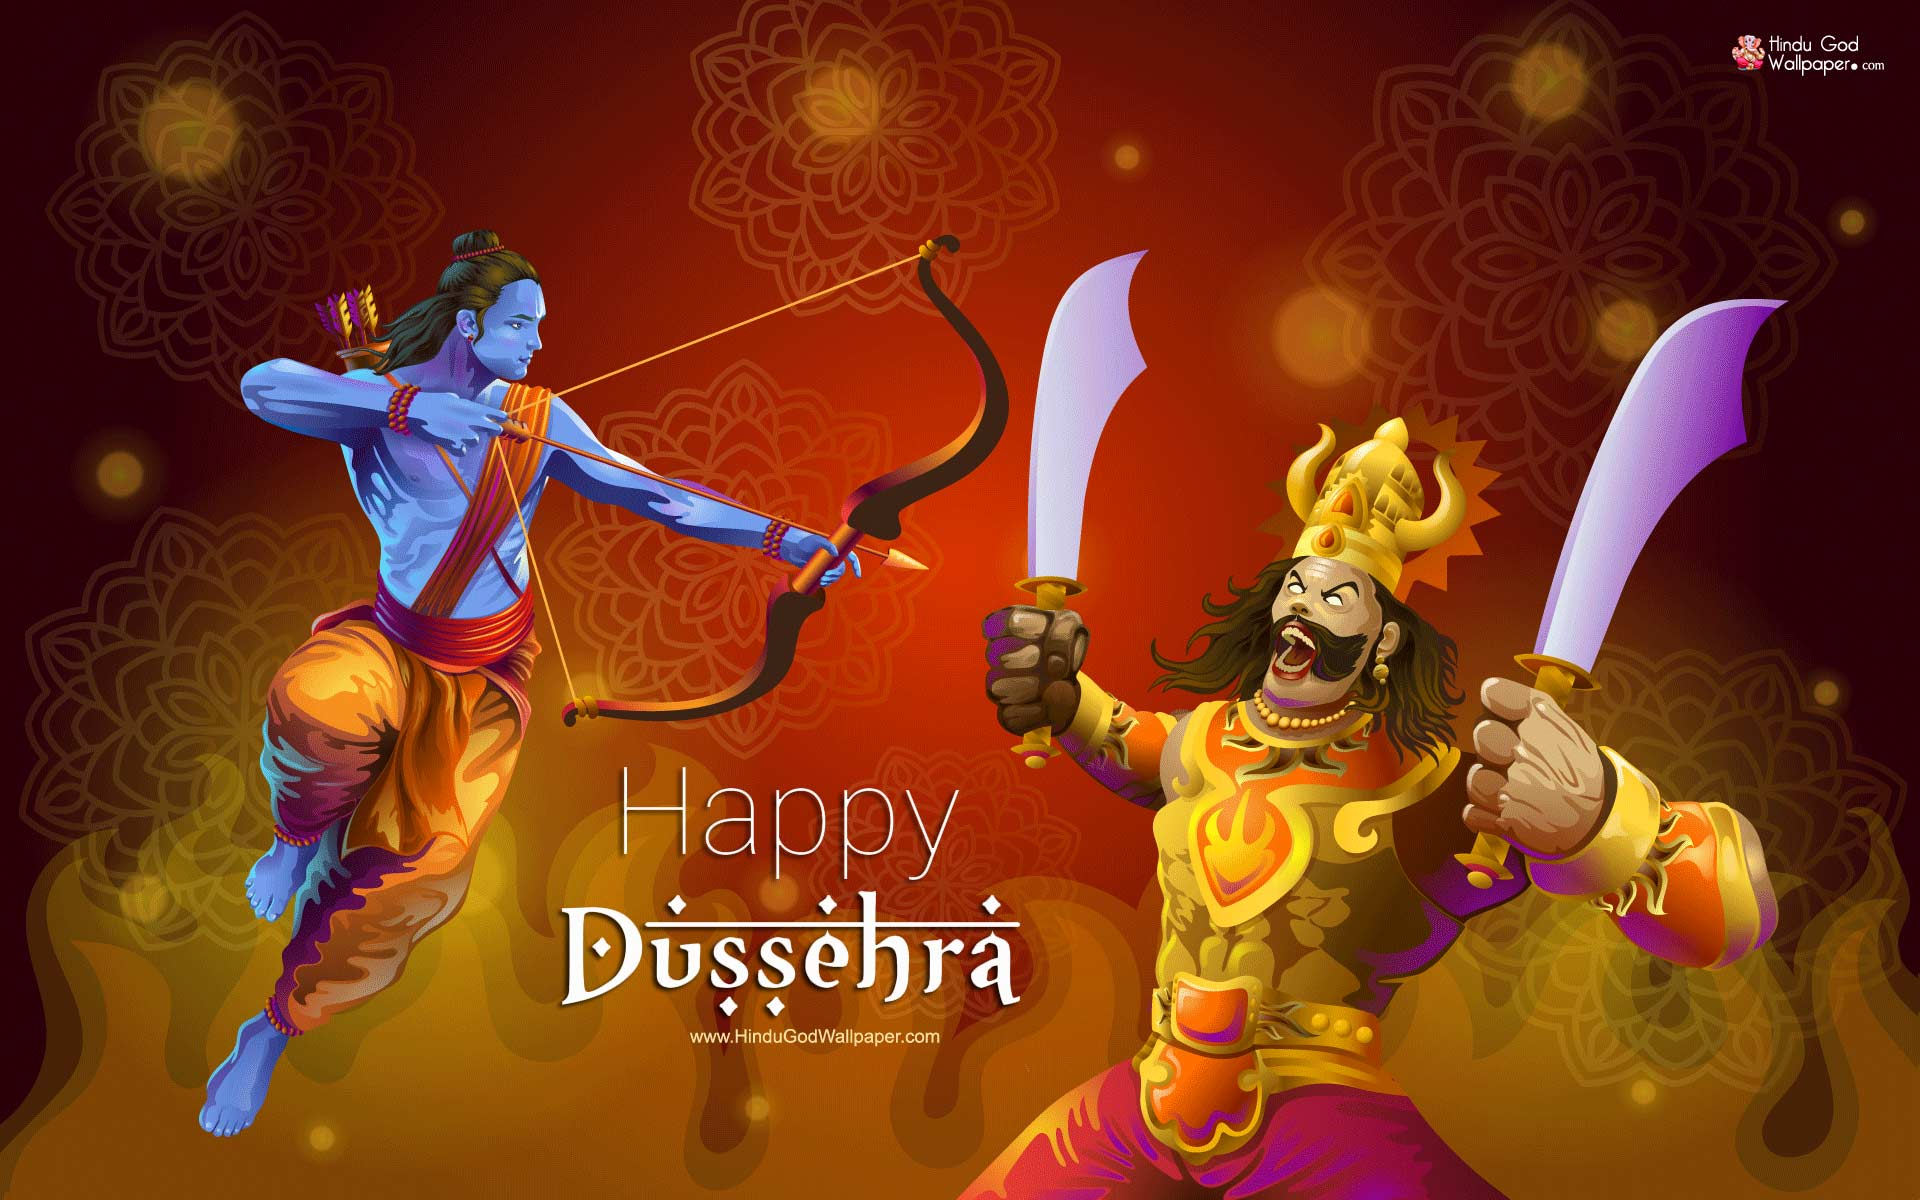 dussehra 2021 wallpapers hd images photos free download dussehra 2021 wallpapers hd images